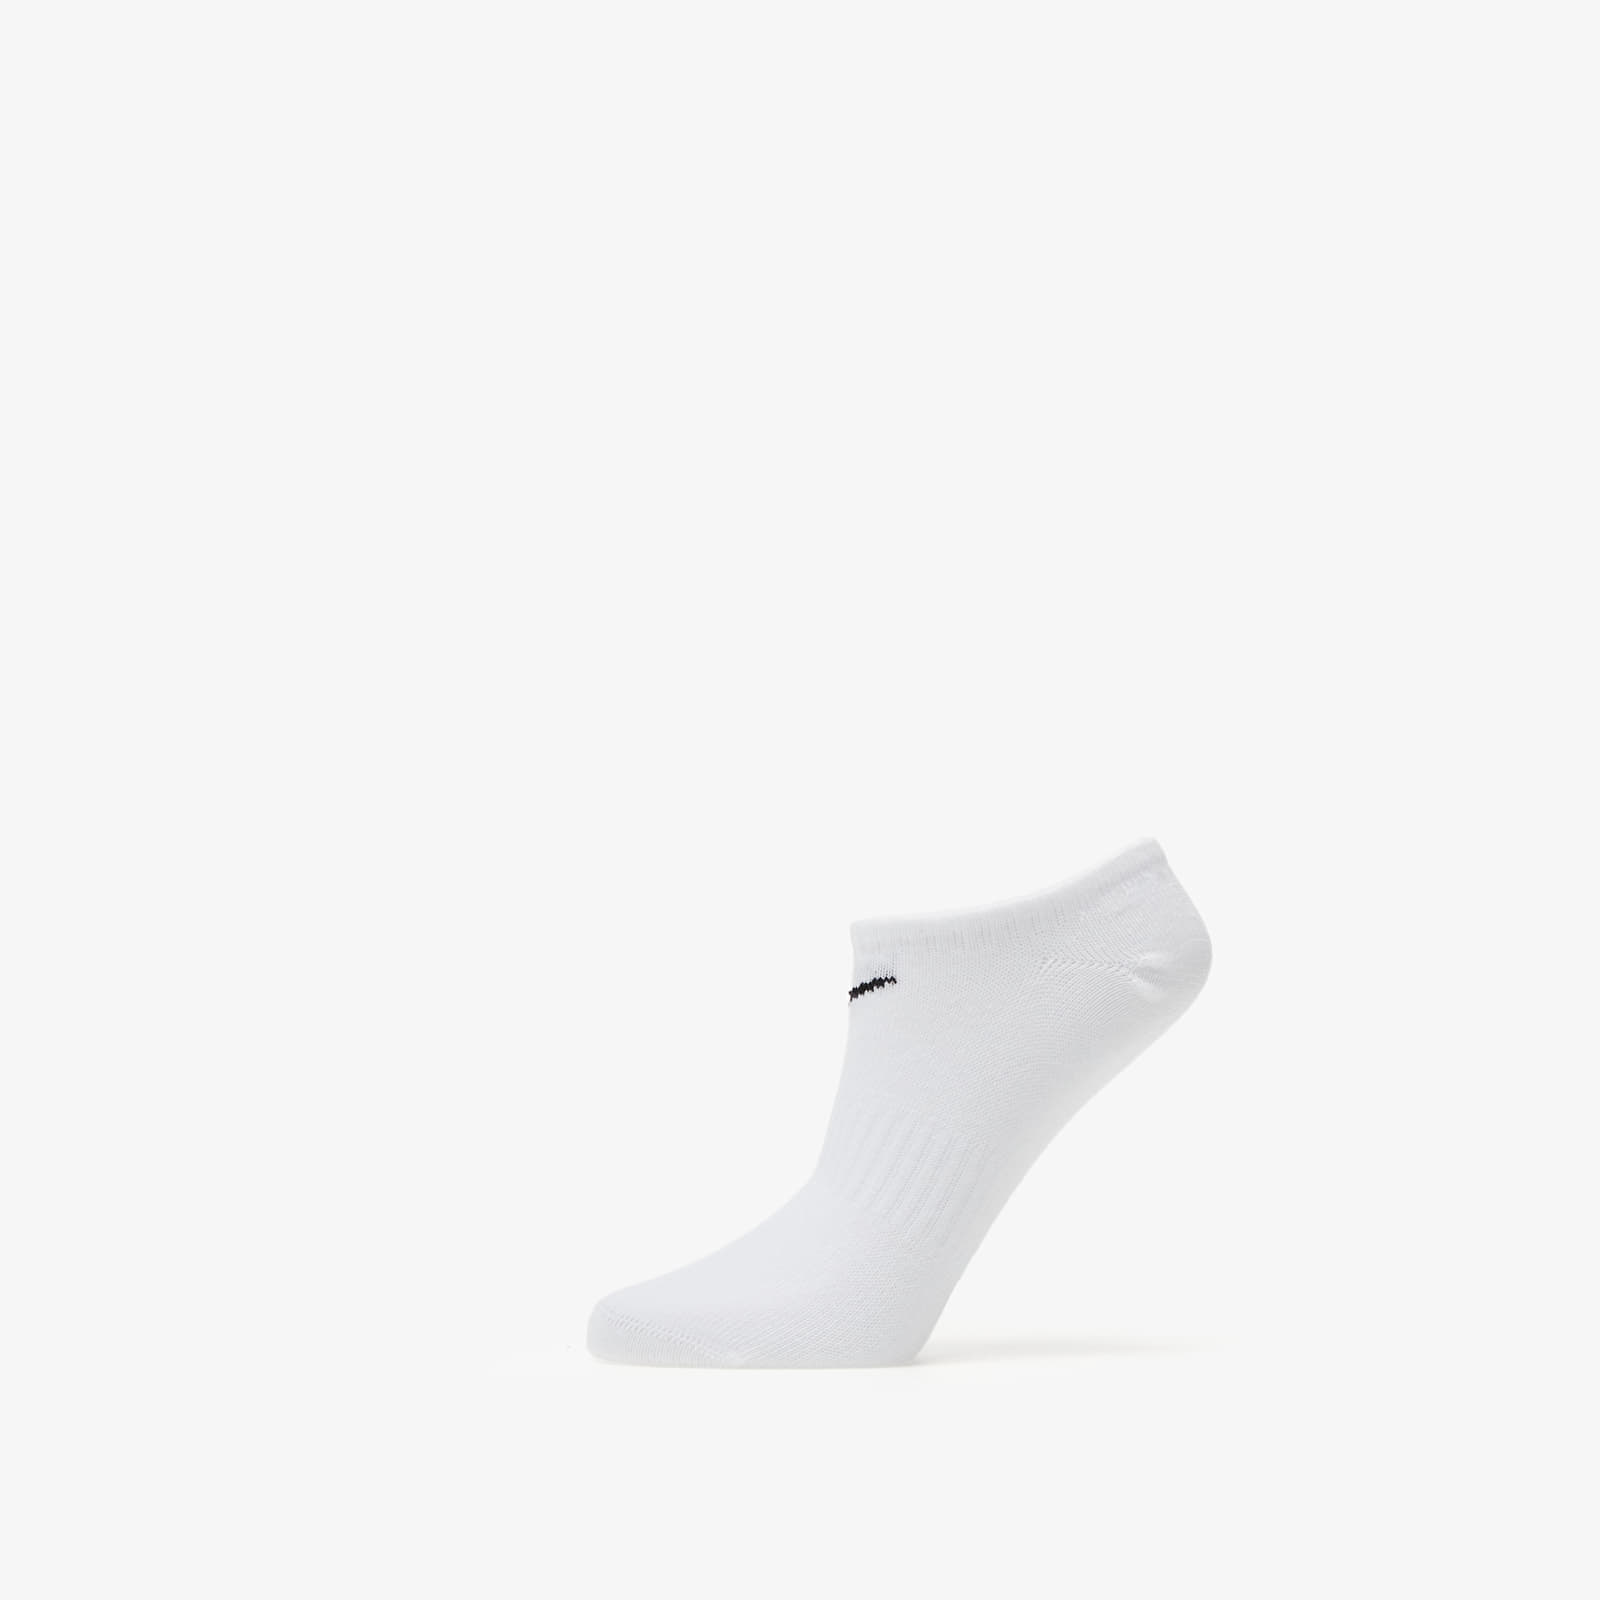 Calzetti Nike Everyday Cotton Lightweight No Show Socks 3 Pack White